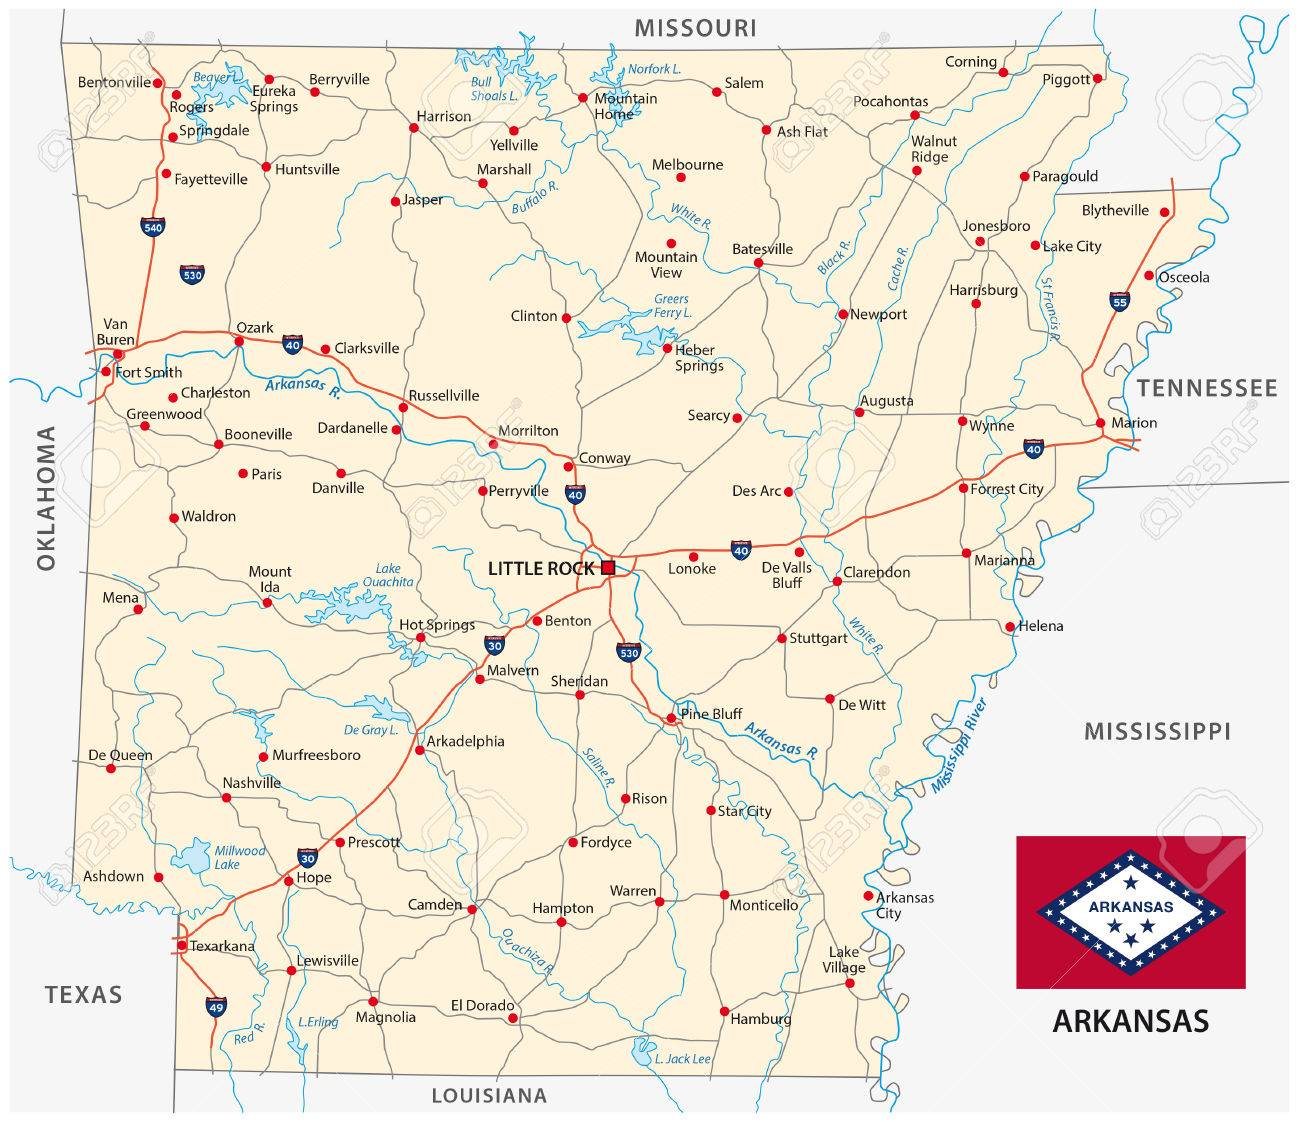 Arkansas Road Map With Flag Royalty Free Cliparts Vectors And